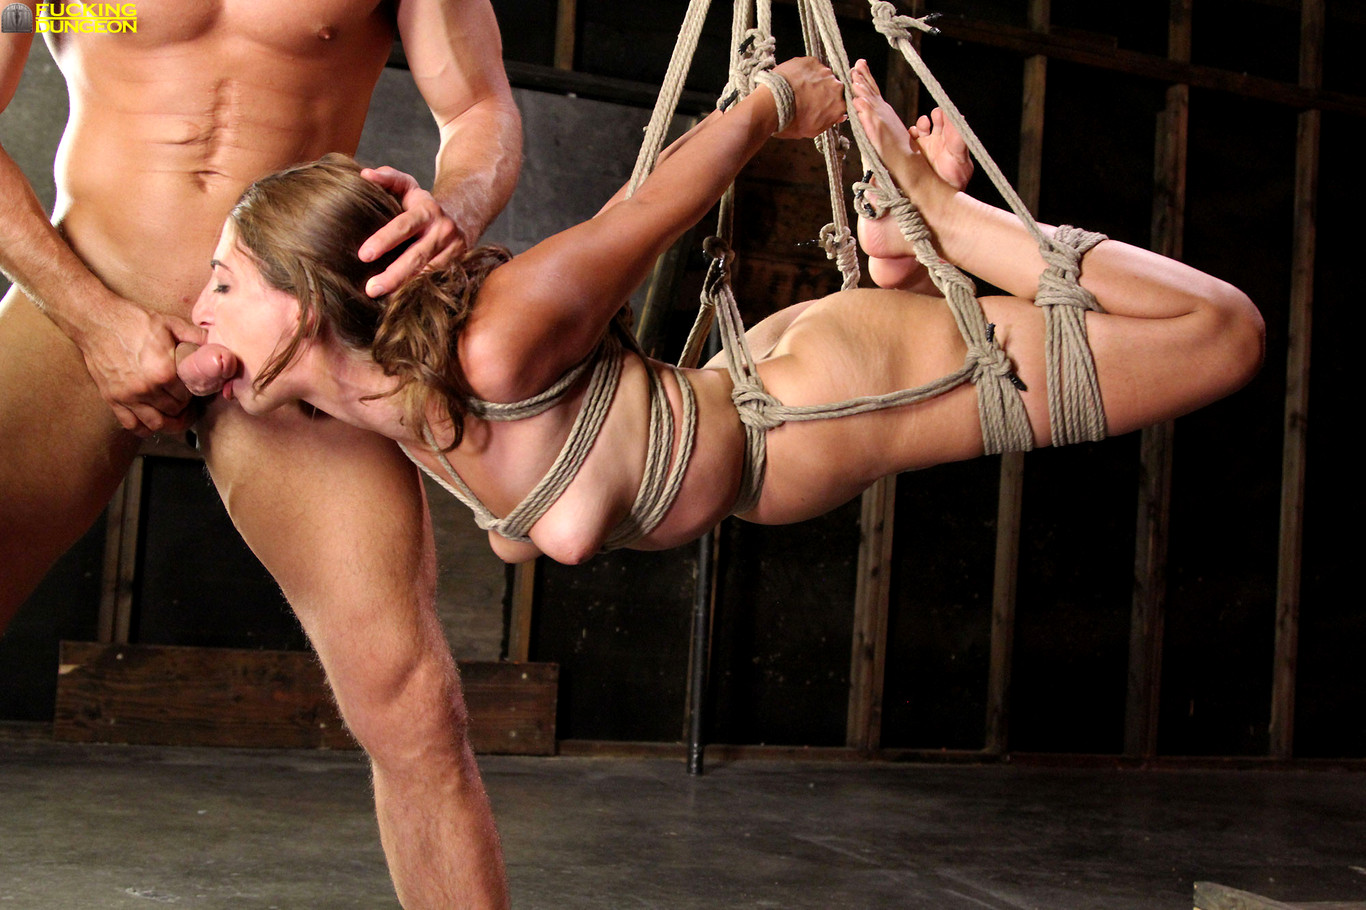 Bondage sex picture galleries